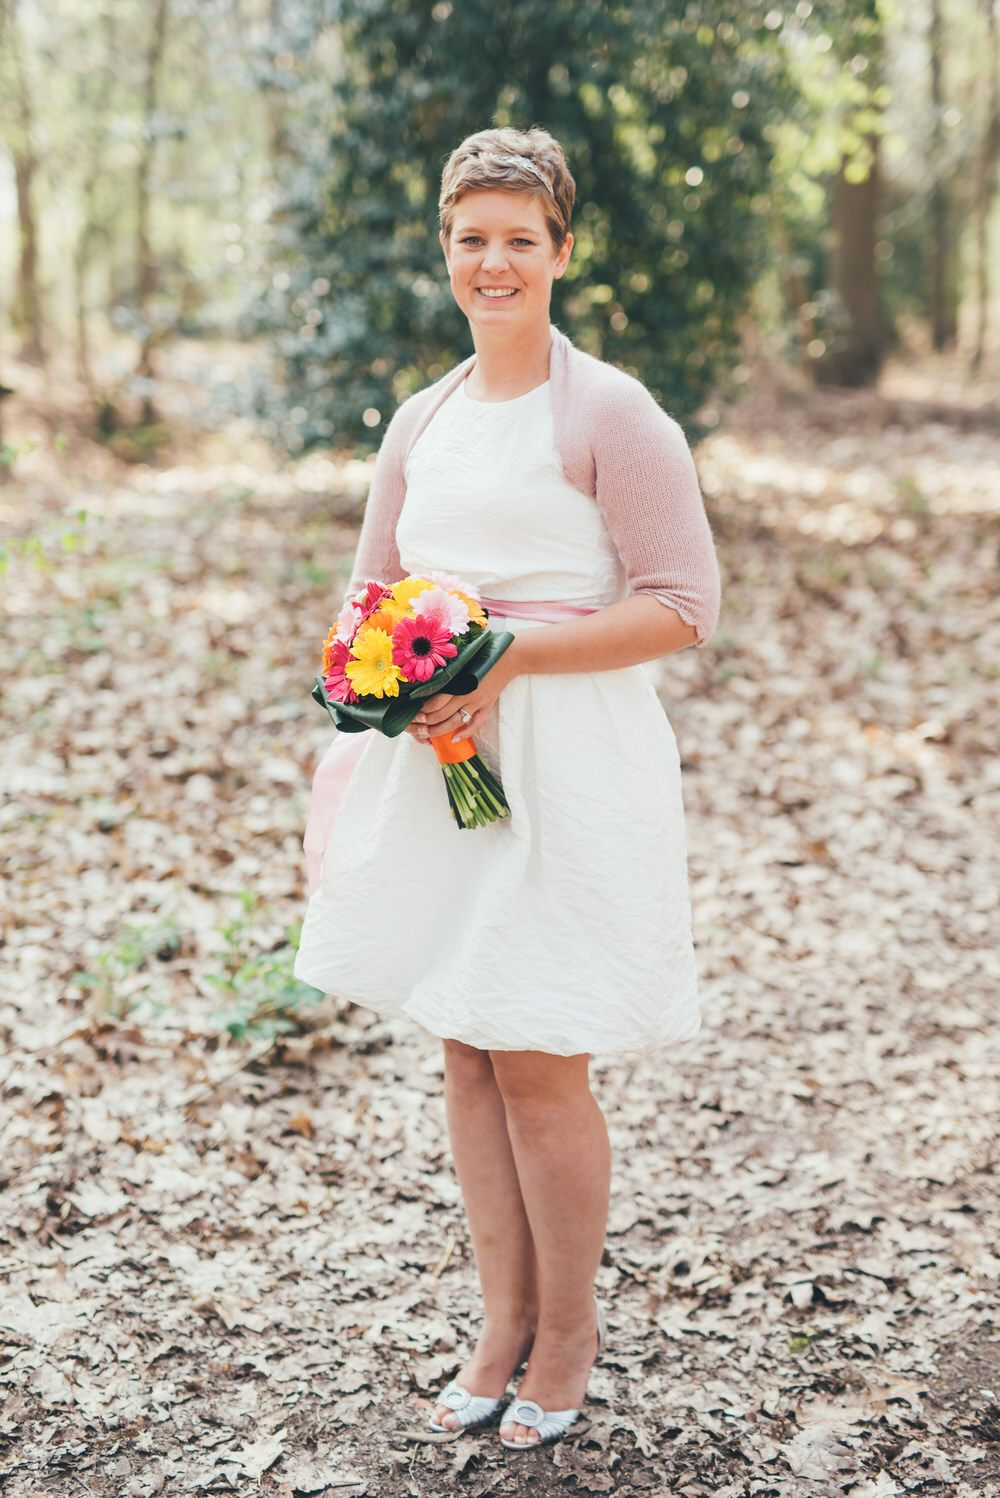 A short wedding dress + blush cardigan for an indie spring wedding | itakeyou.co.uk #wedding #springwedding #indiewedding #shortweddingdress #weddingdresses #weddingdress